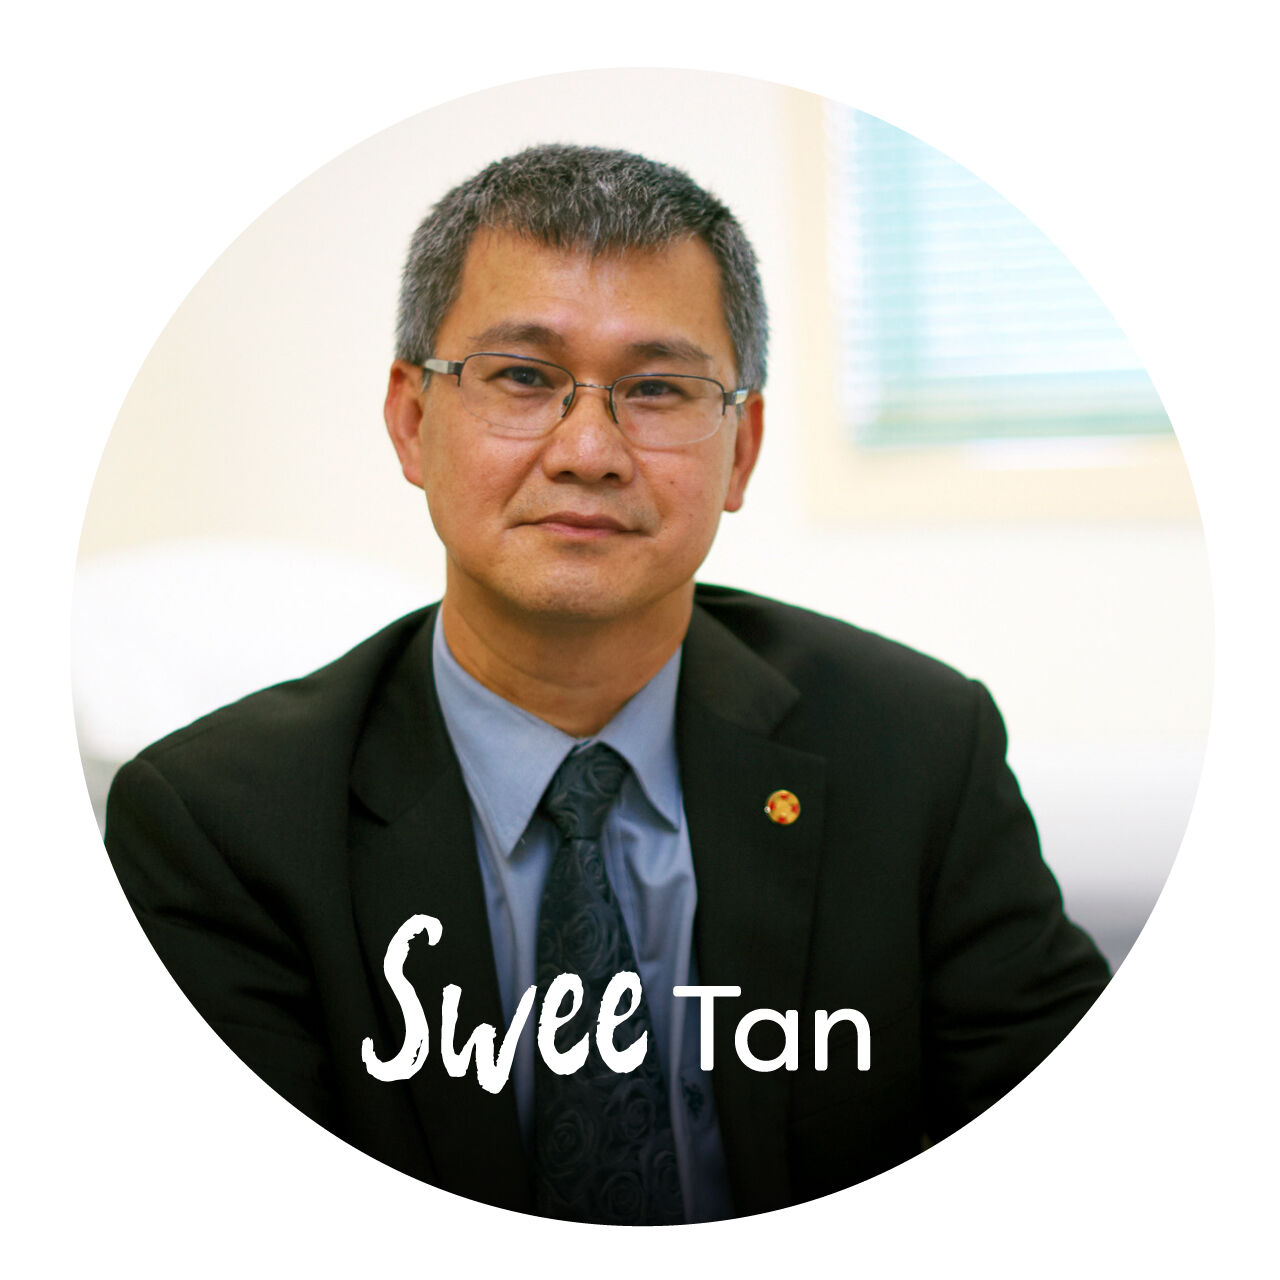 A picture of Swee Tan